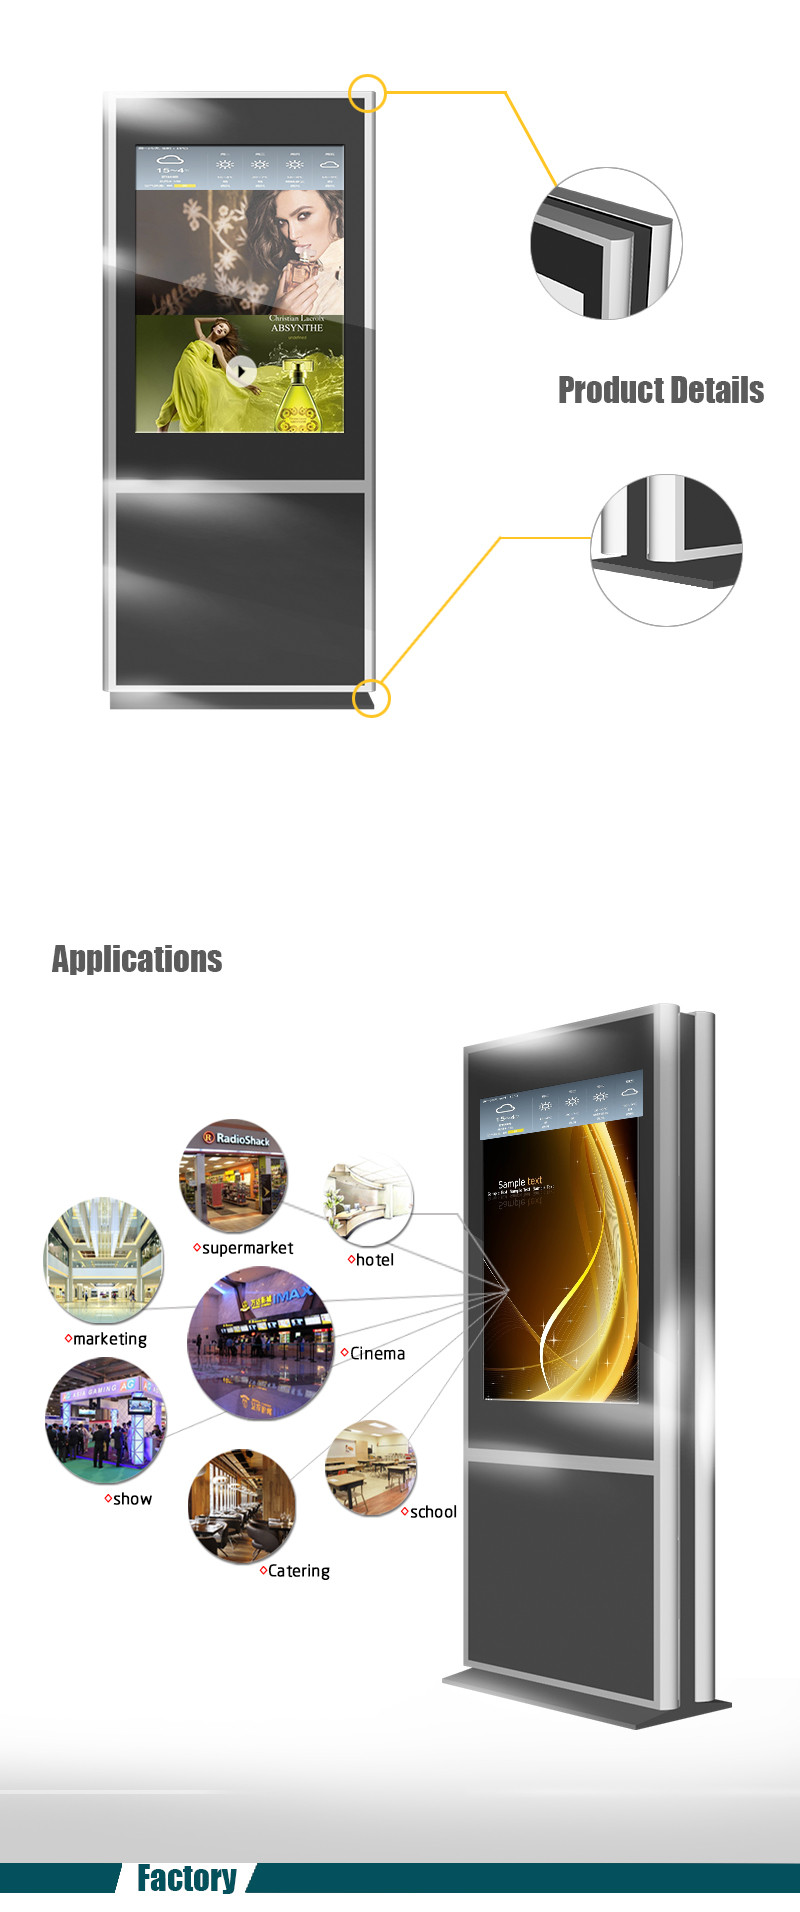 42 inch touch screen kiosk standalone digital signage screen/full new player ftp android media player/advertising gadget